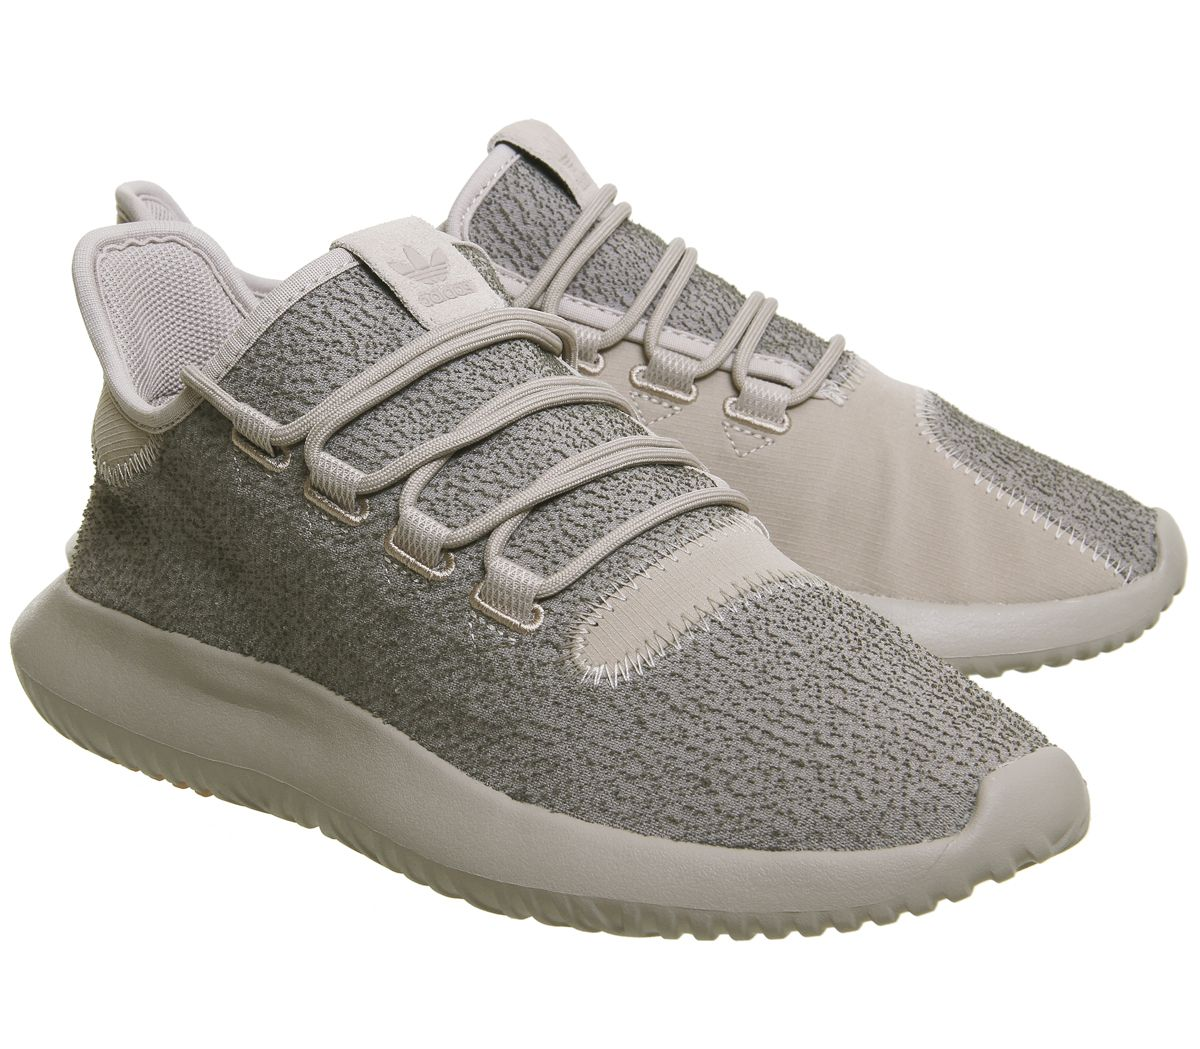 Details about Adidas Tubular Shadow Vapour Grey Trainers Shoes